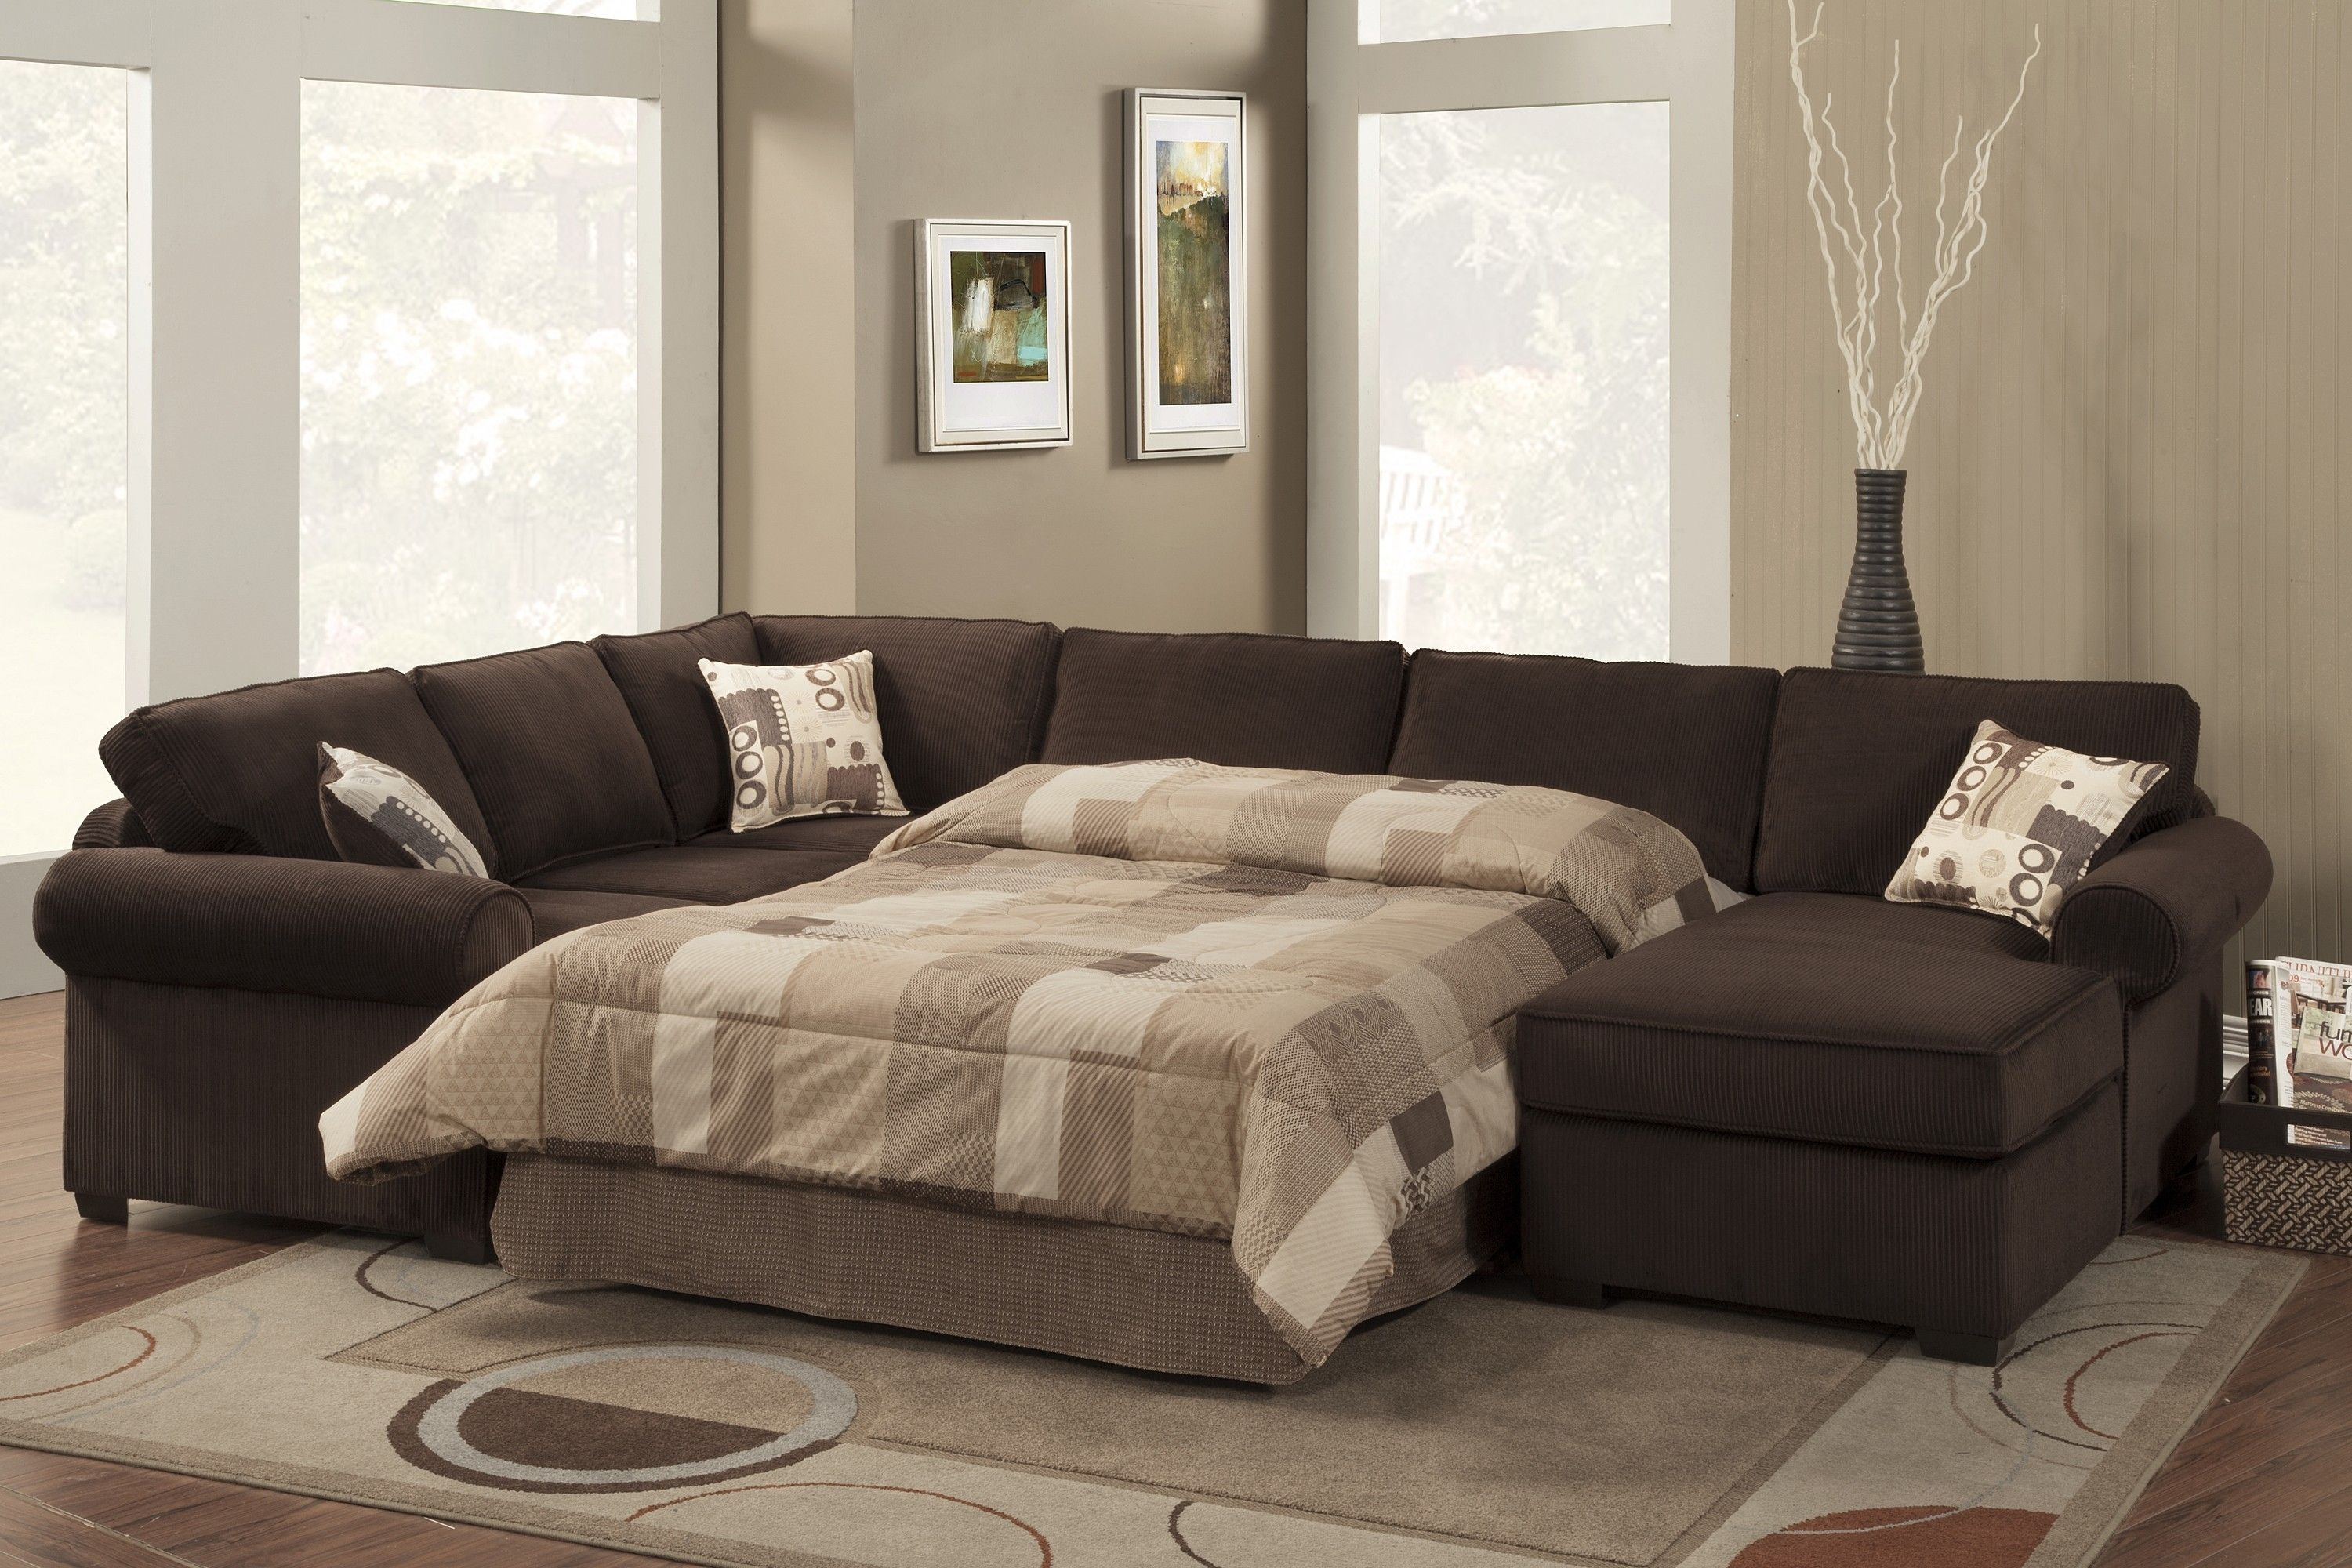 Sectional Sleeper Sofa With Queen Bed Sectional Sofa With Chaise